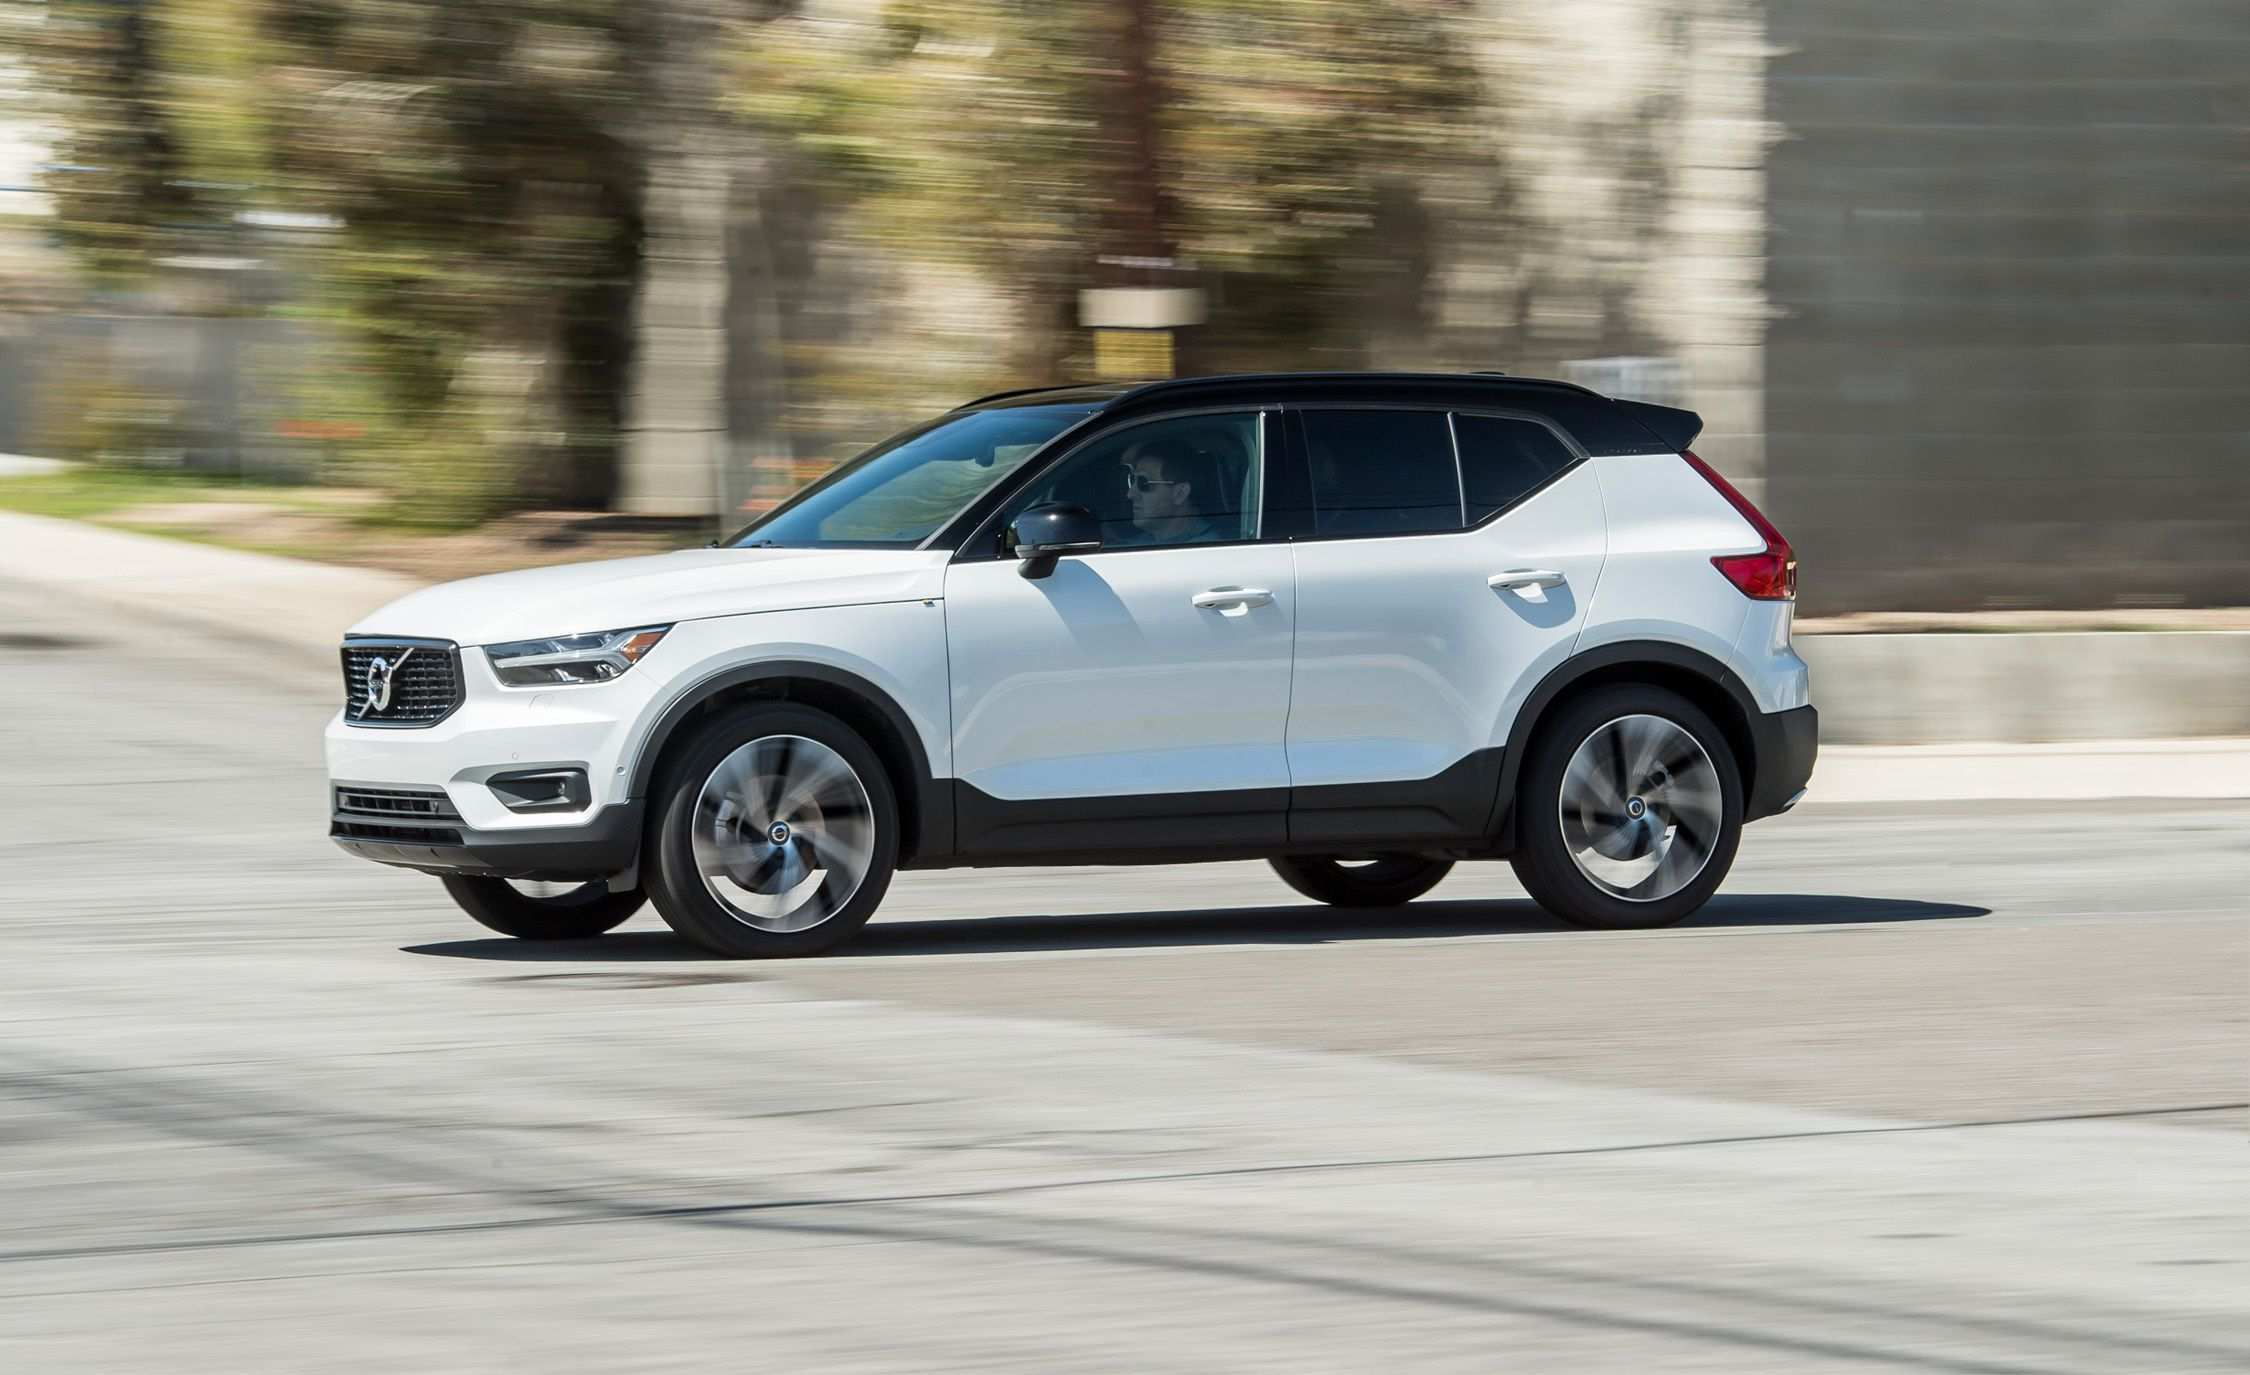 14 Gallery of Volvo Xc40 Dimensions 2019 Price for Volvo Xc40 Dimensions 2019